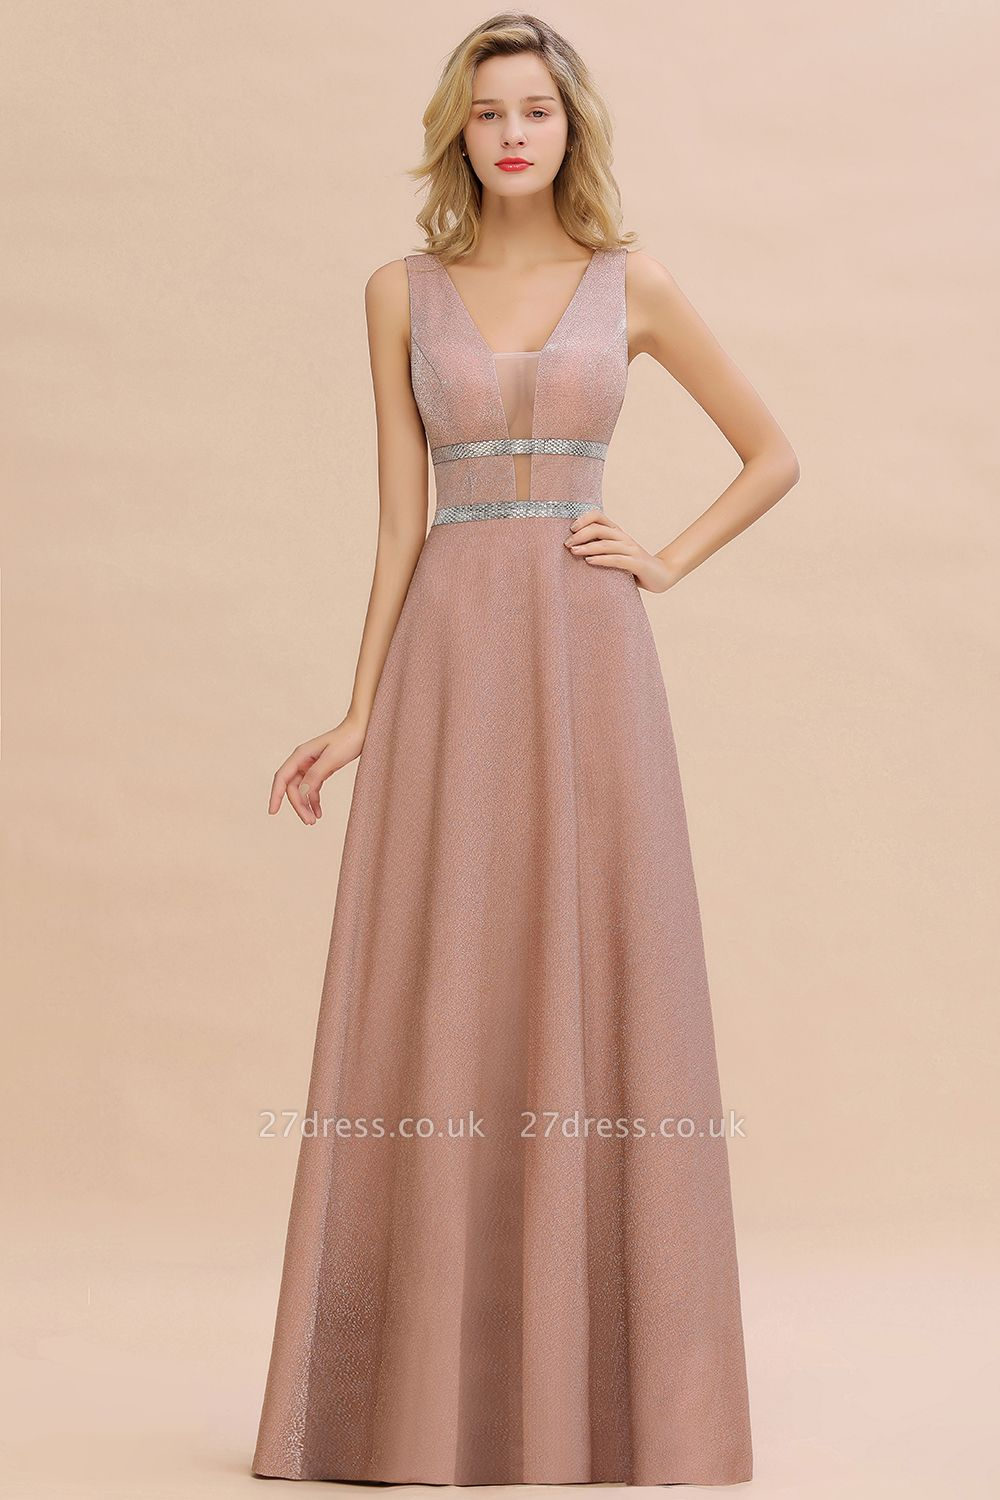 Sparkly Long Evening Dress with Shining Belt | Sexy Sleeveless Pink Formal Dress Cheap